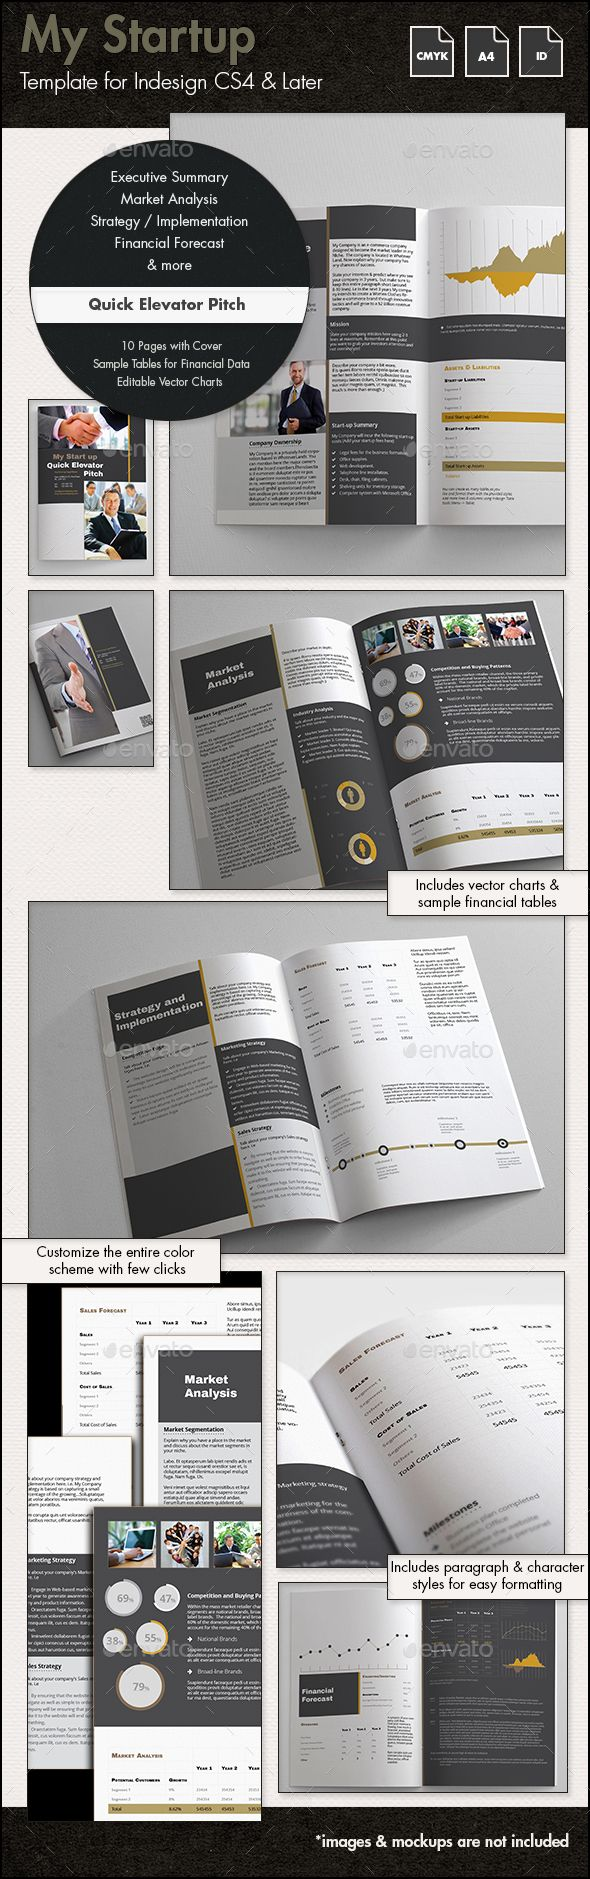 My Startup Quick Elevator Pitch Template